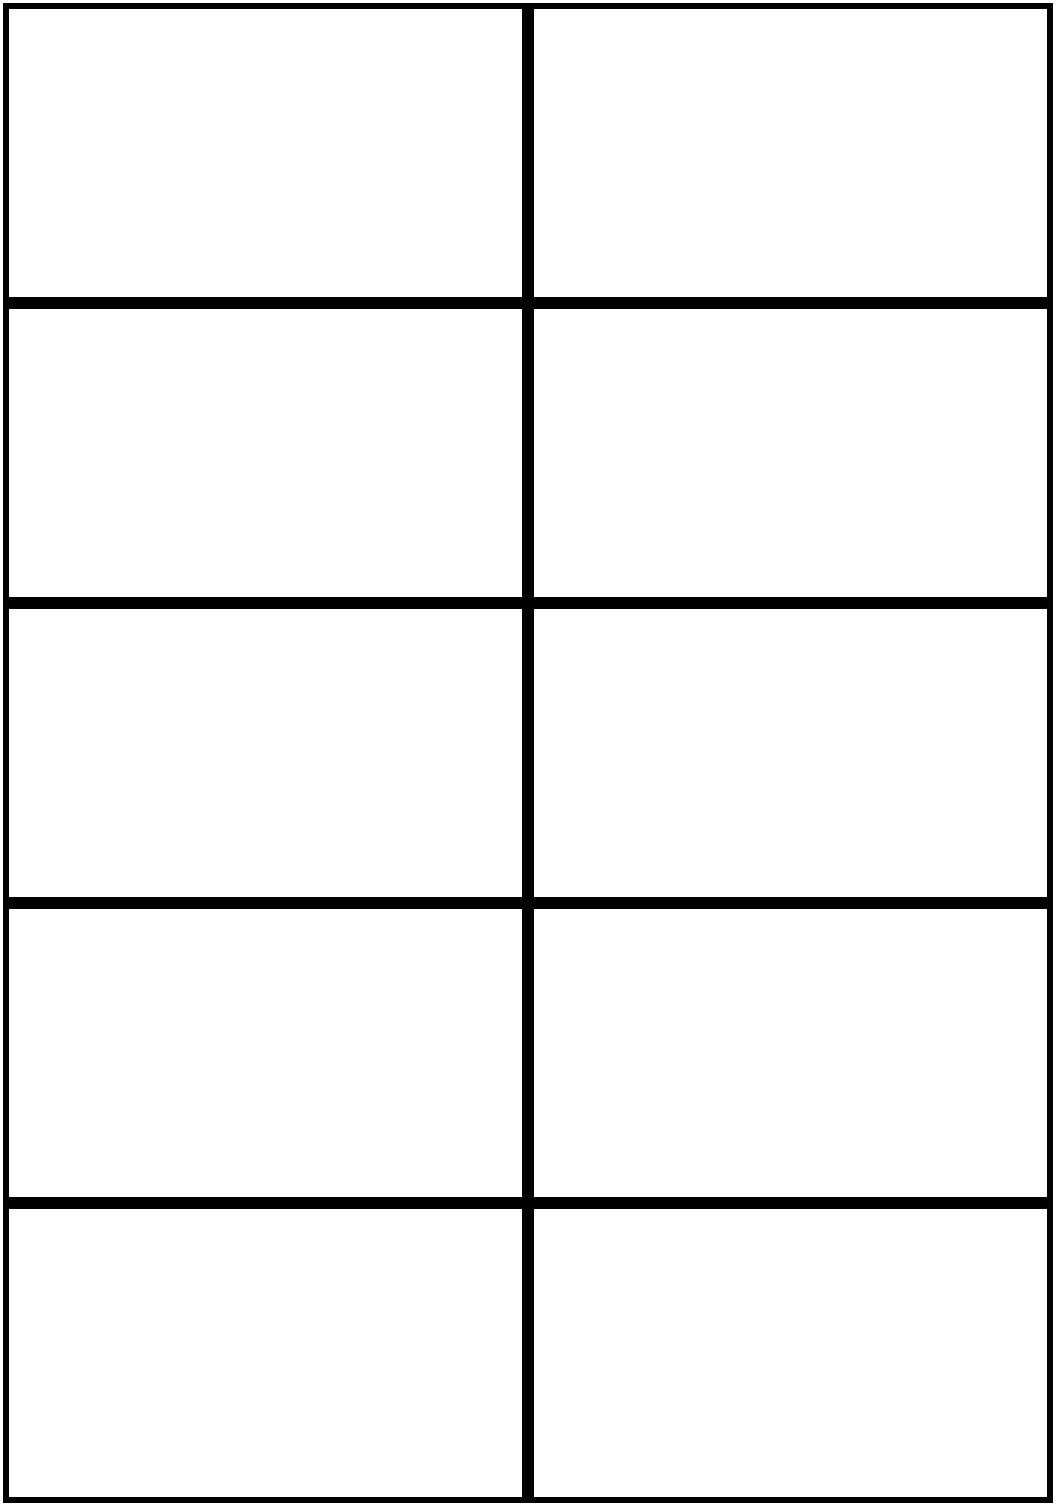 Image Result For Flashcards Template Word | Worksheets | Free - Free Printable Business Card Templates For Word